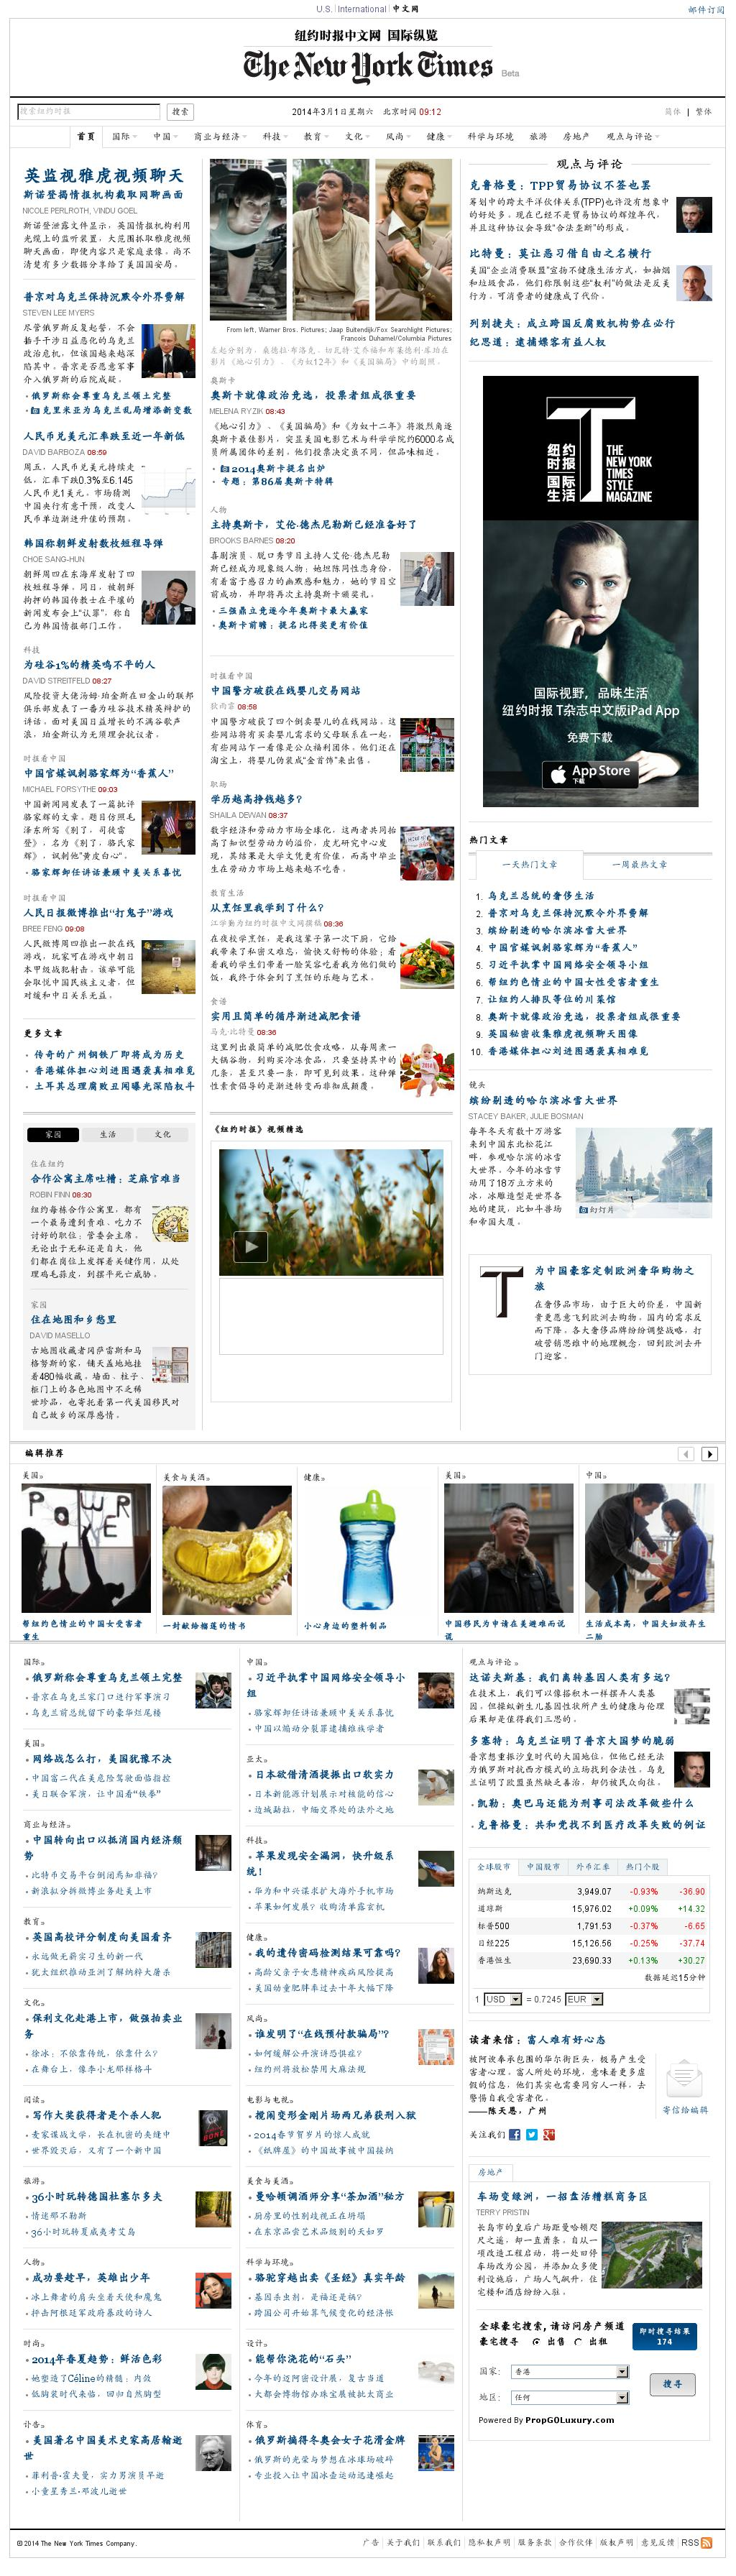 The New York Times (Chinese) at Saturday March 1, 2014, 5:11 p.m. UTC